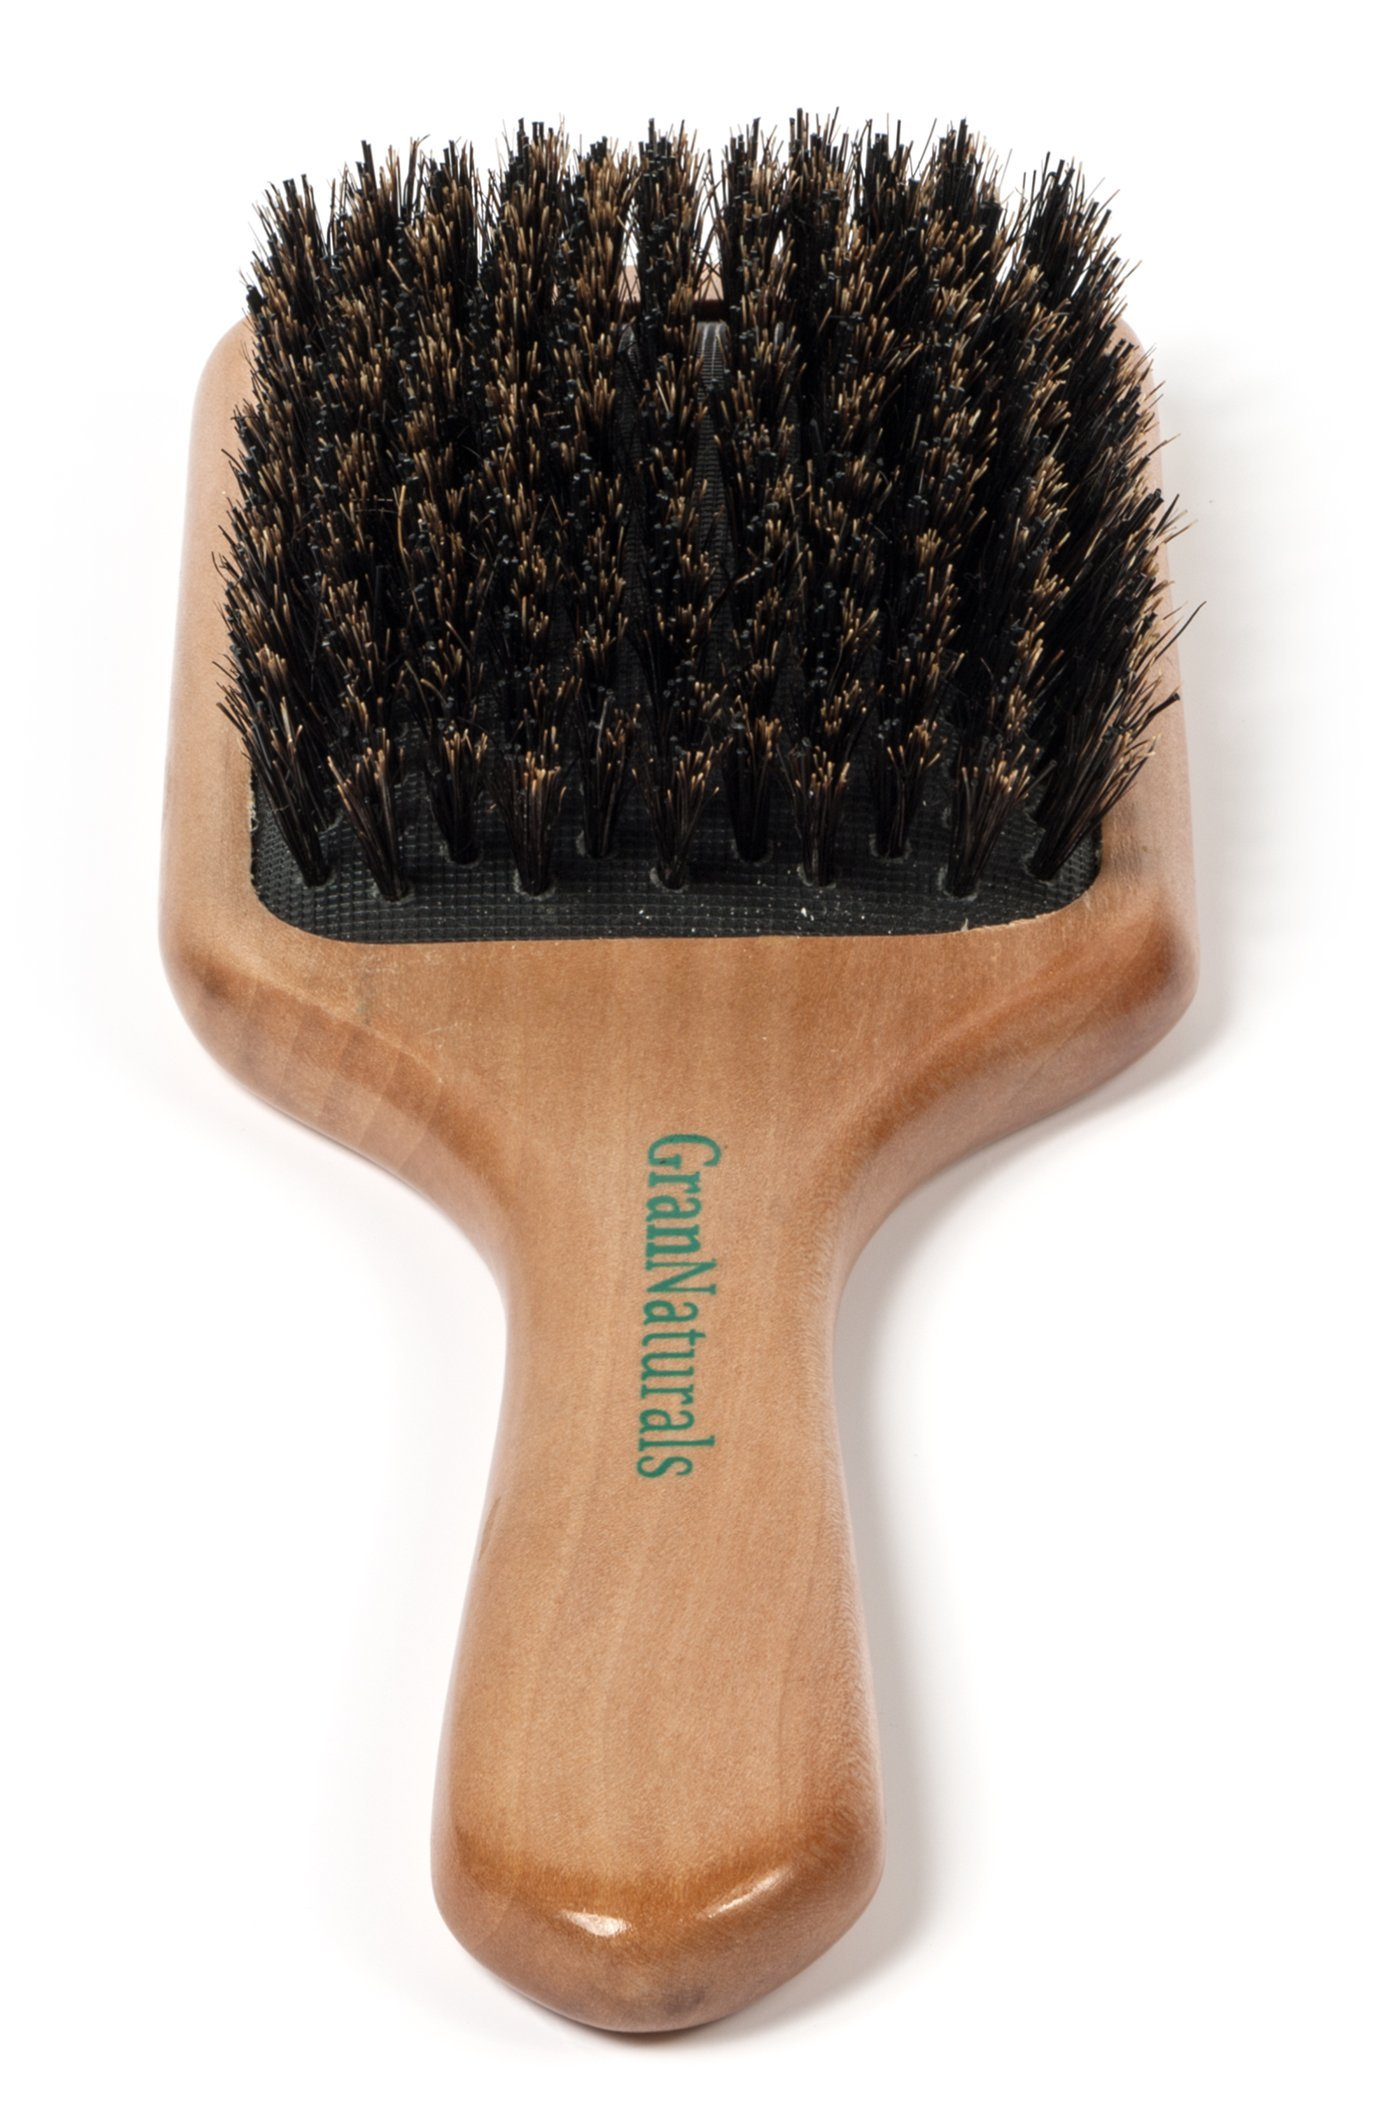 GranNaturals Boar Bristle Hair Brush for Women and Men - Soft Bristles - Natural Wooden Large Flat Square Paddle Hairbrush - For Thick, Fine, Thin, Wavy, Straight, Long, or Short Hair